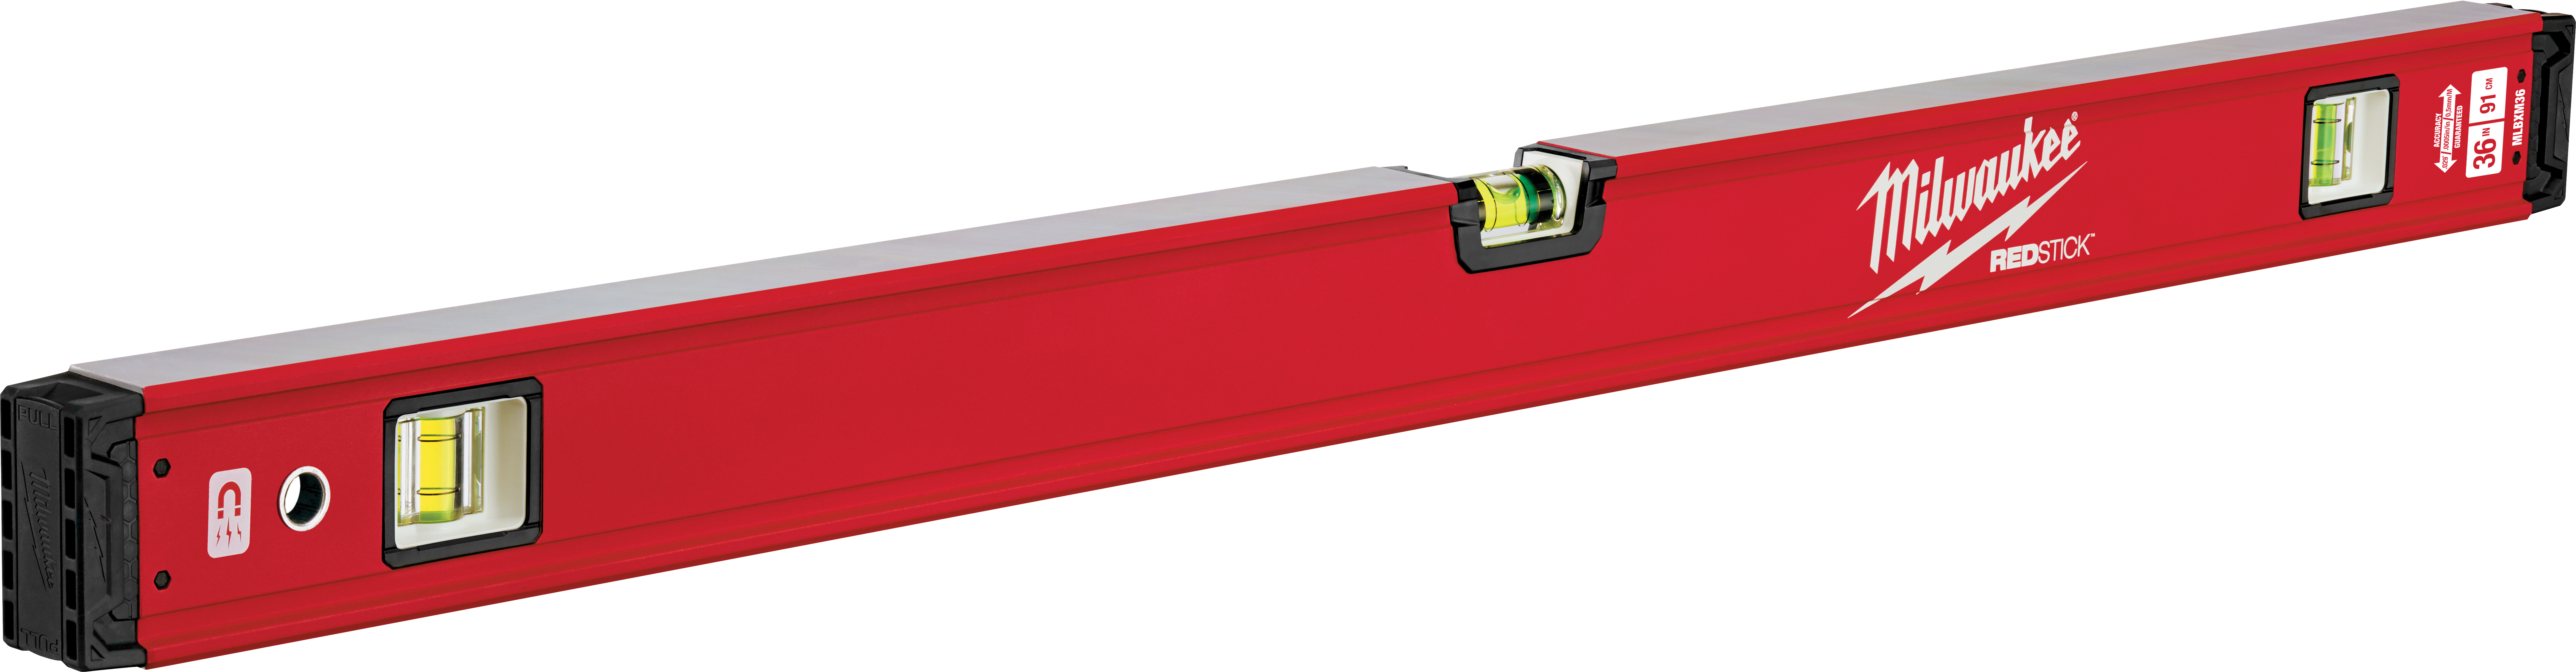 Milwaukee® REDSTICK™ MLBXM36 Magnetic Box Level, 36 in L, 3 Vials, Aluminum, (1) Level, (2) Plumb Vial Position, 0.0005 in/in Accuracy